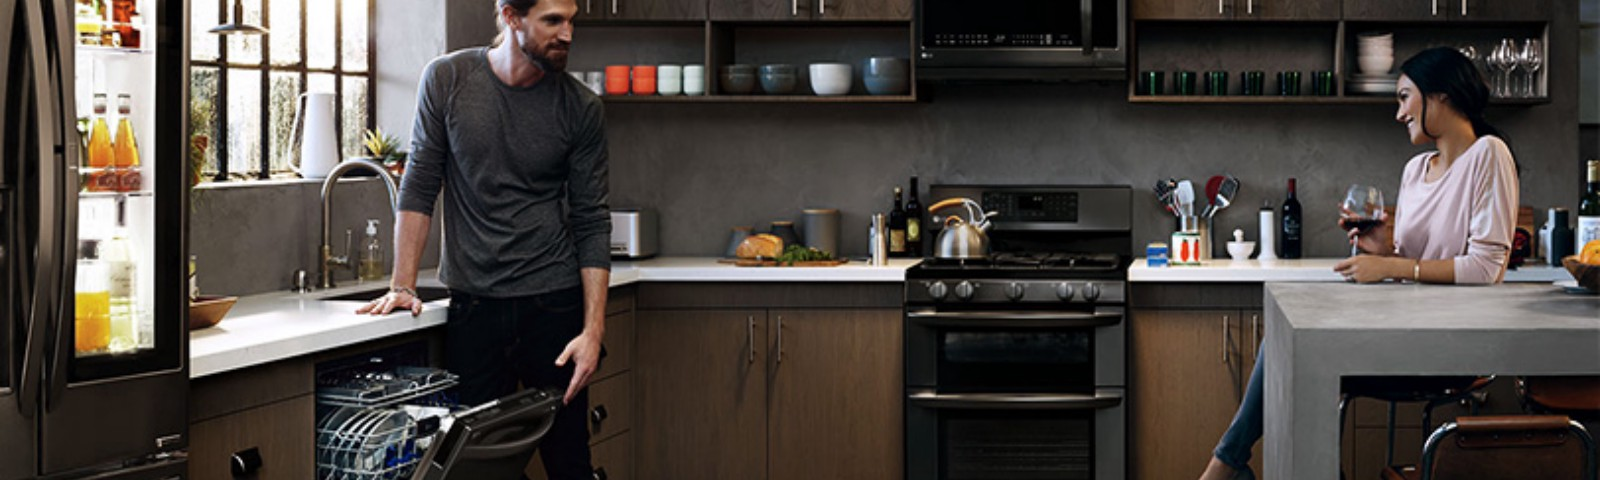 Tips For Matching Cabinets With Black Stainless Steel Appliances